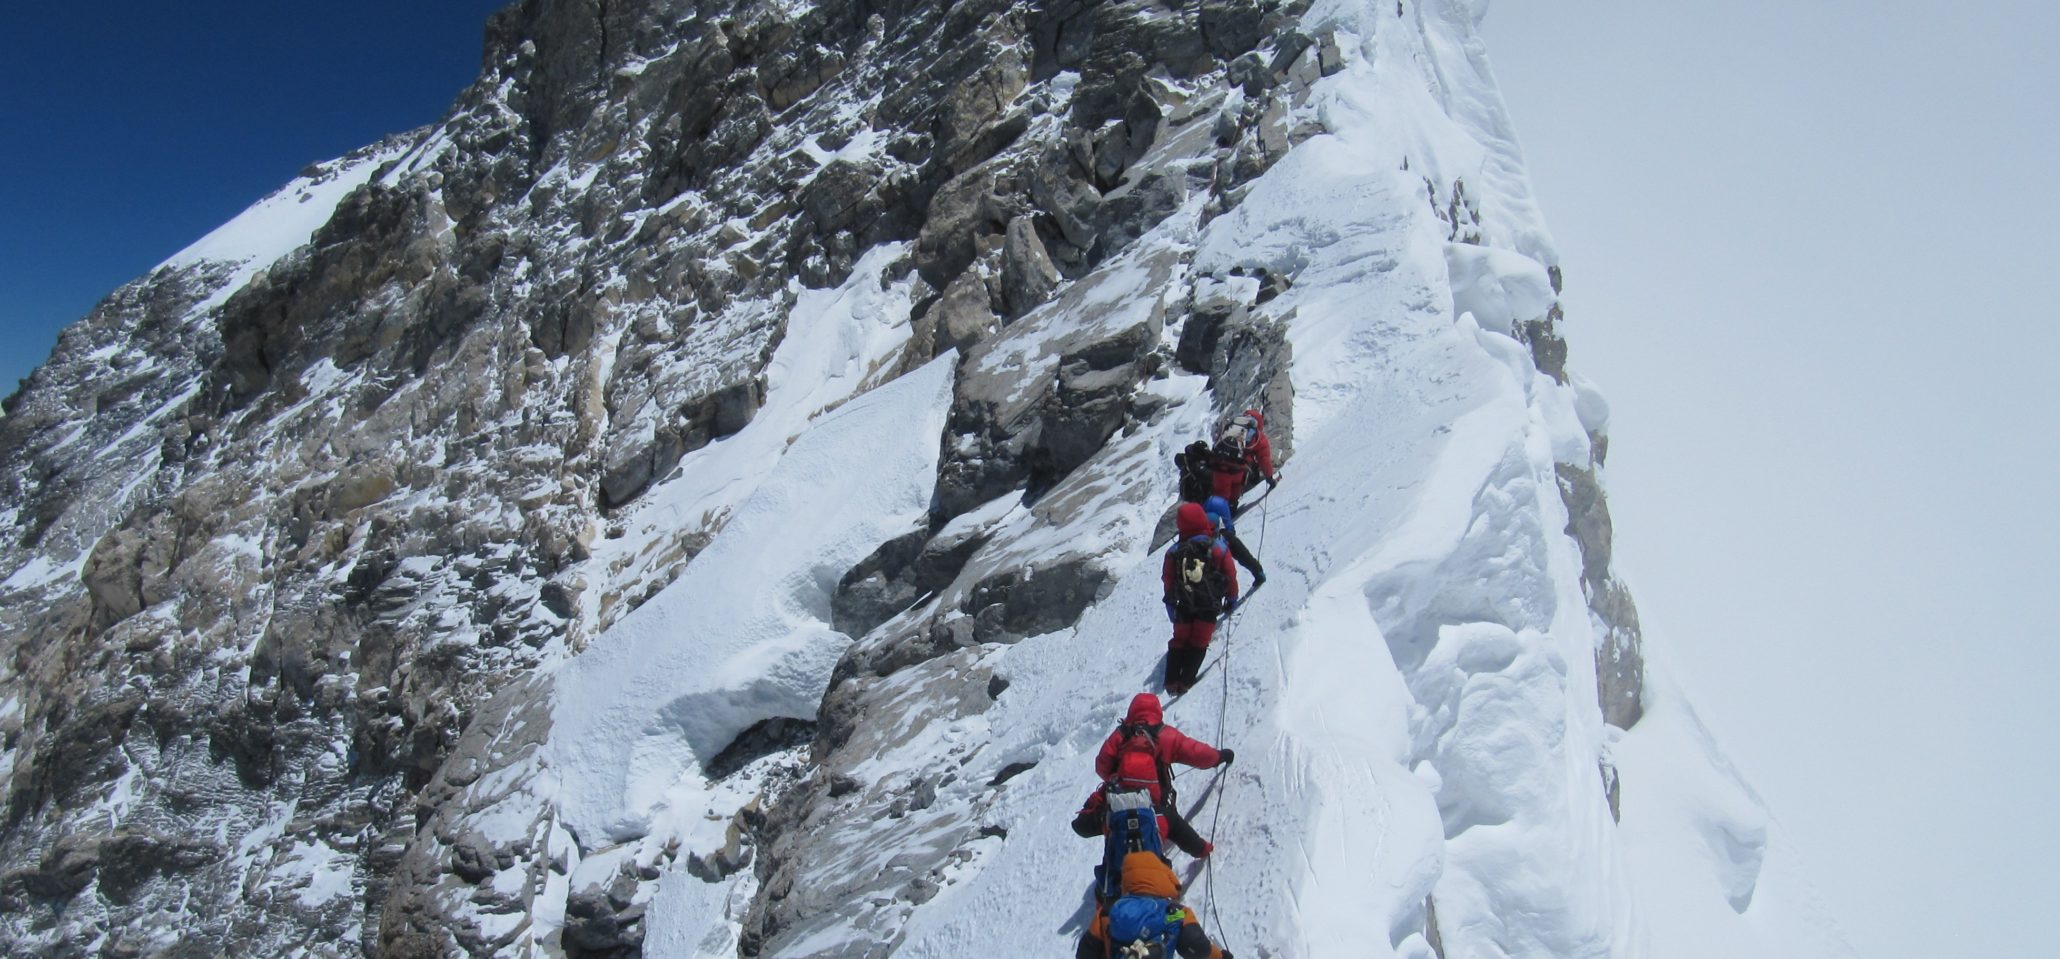 6 himalayan trekkers at the peak of the mt. everest